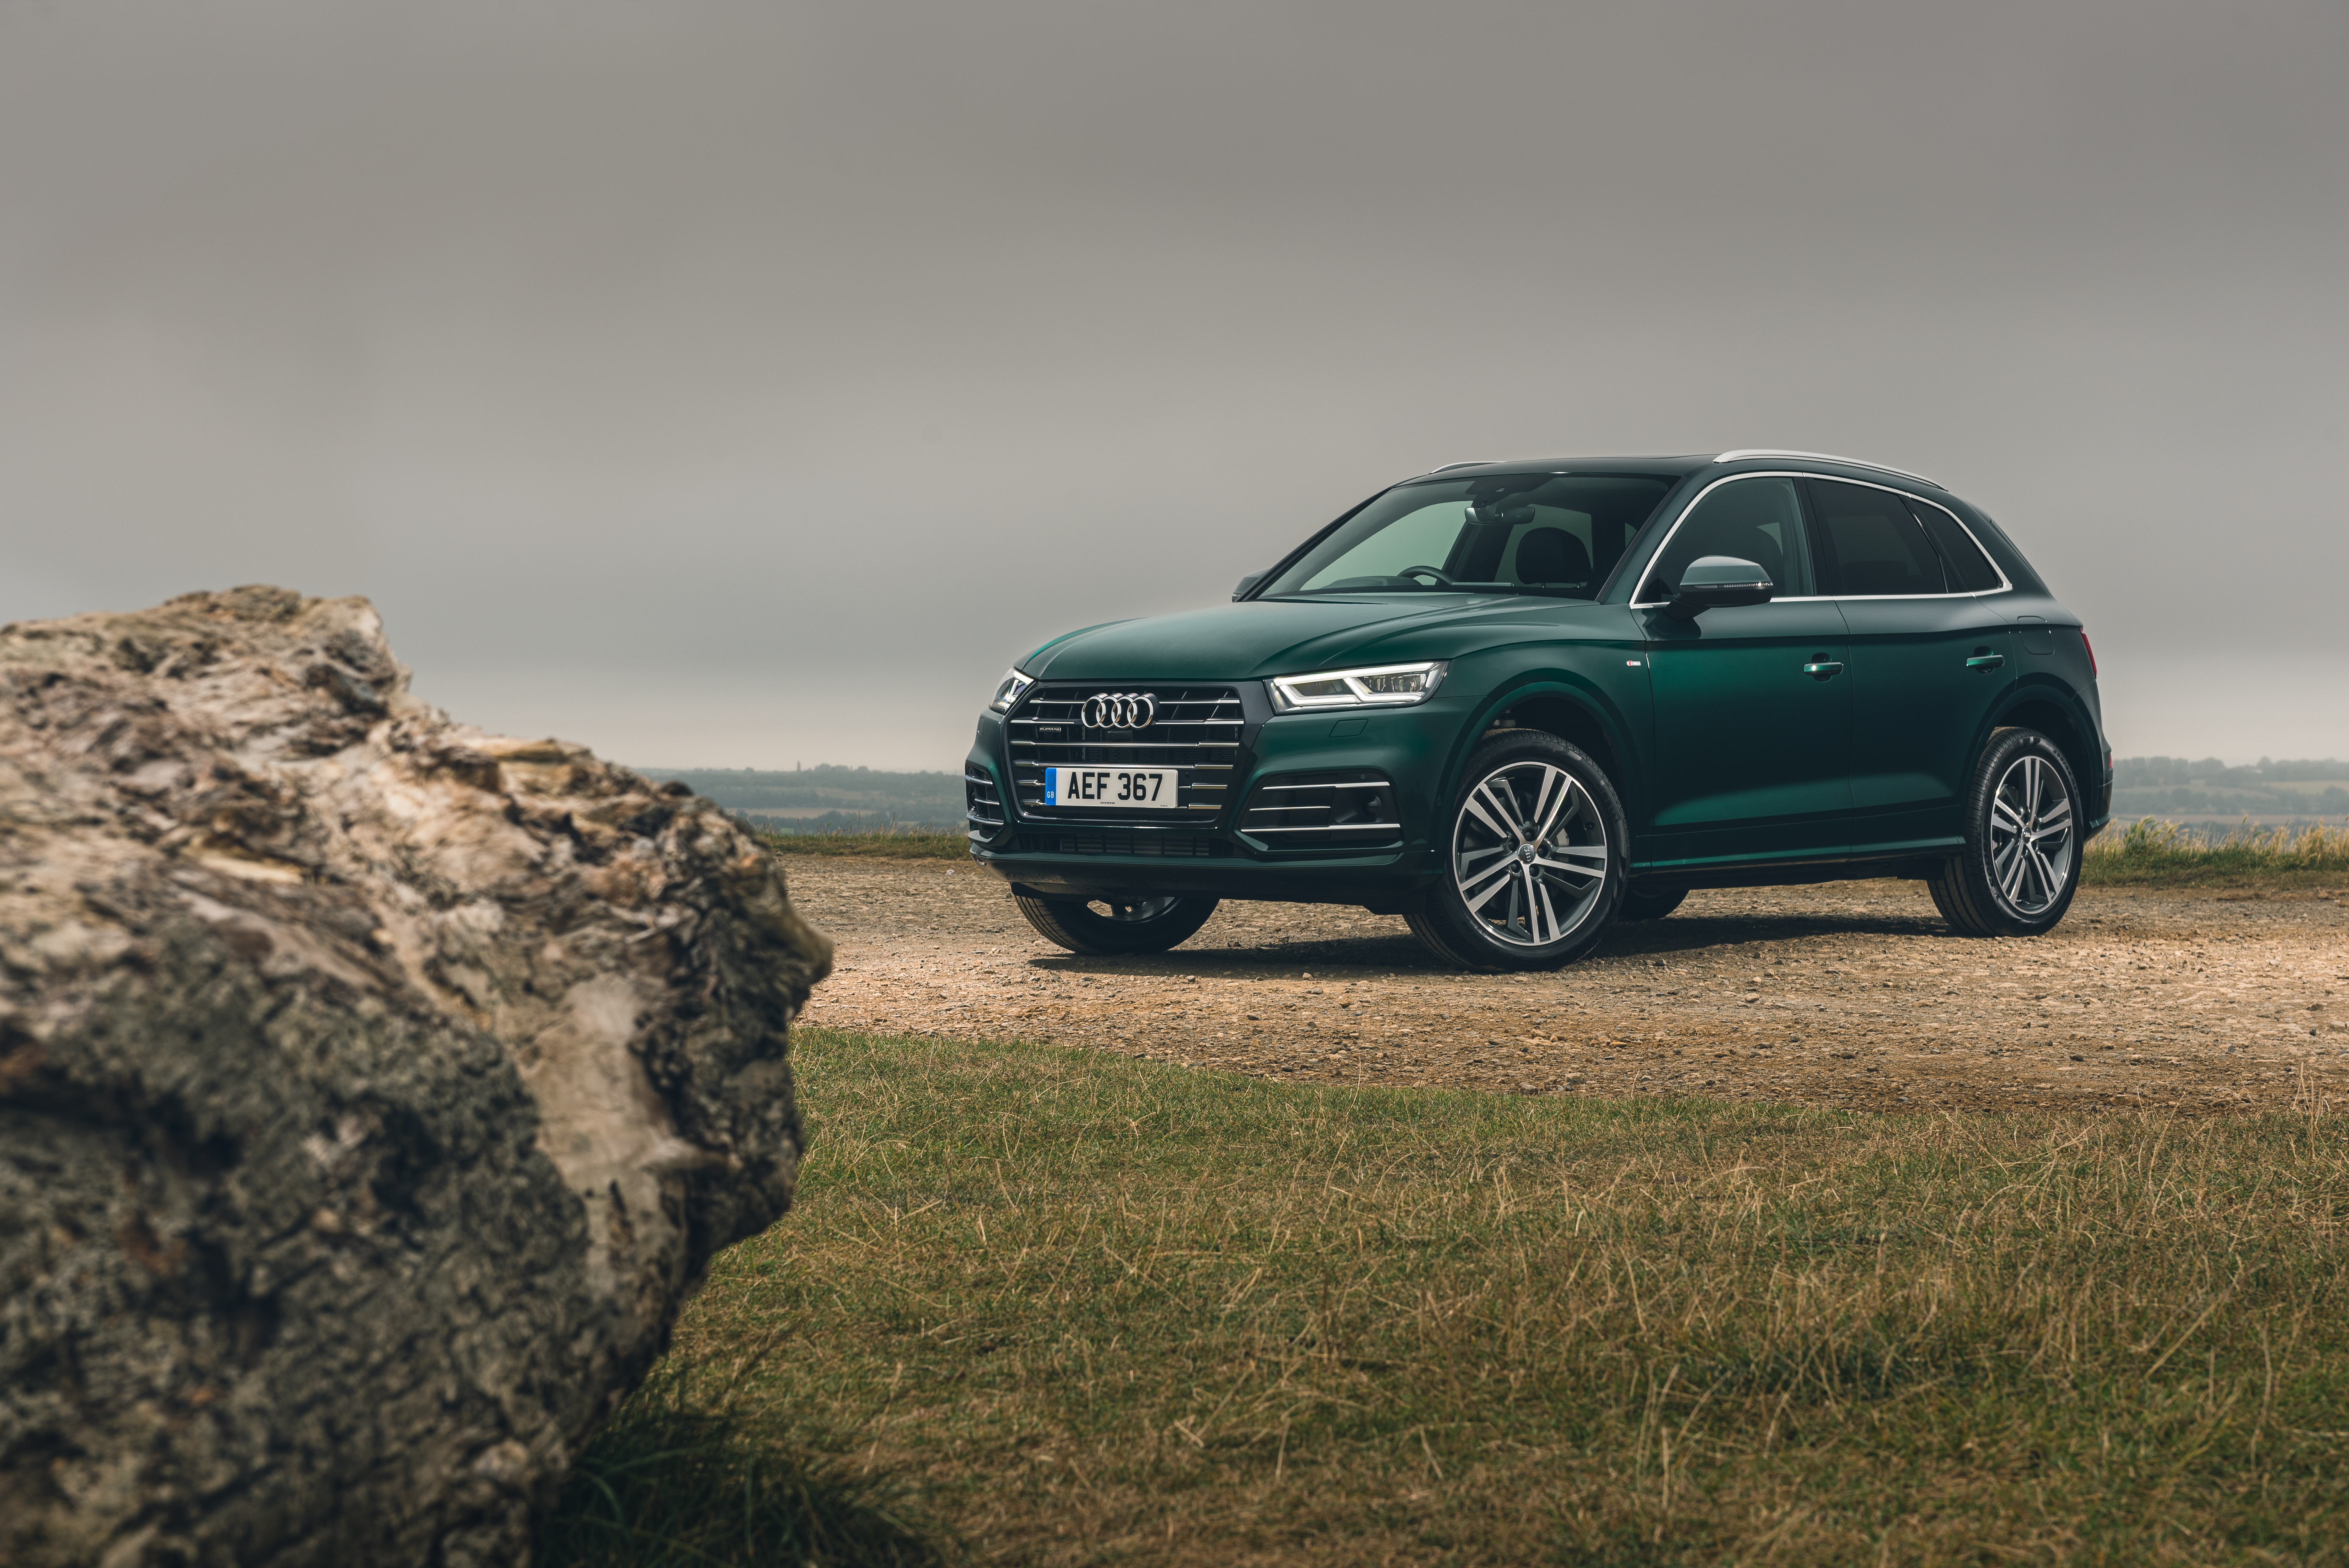 There's little styling-wise to show that the Q5 is a hybrid